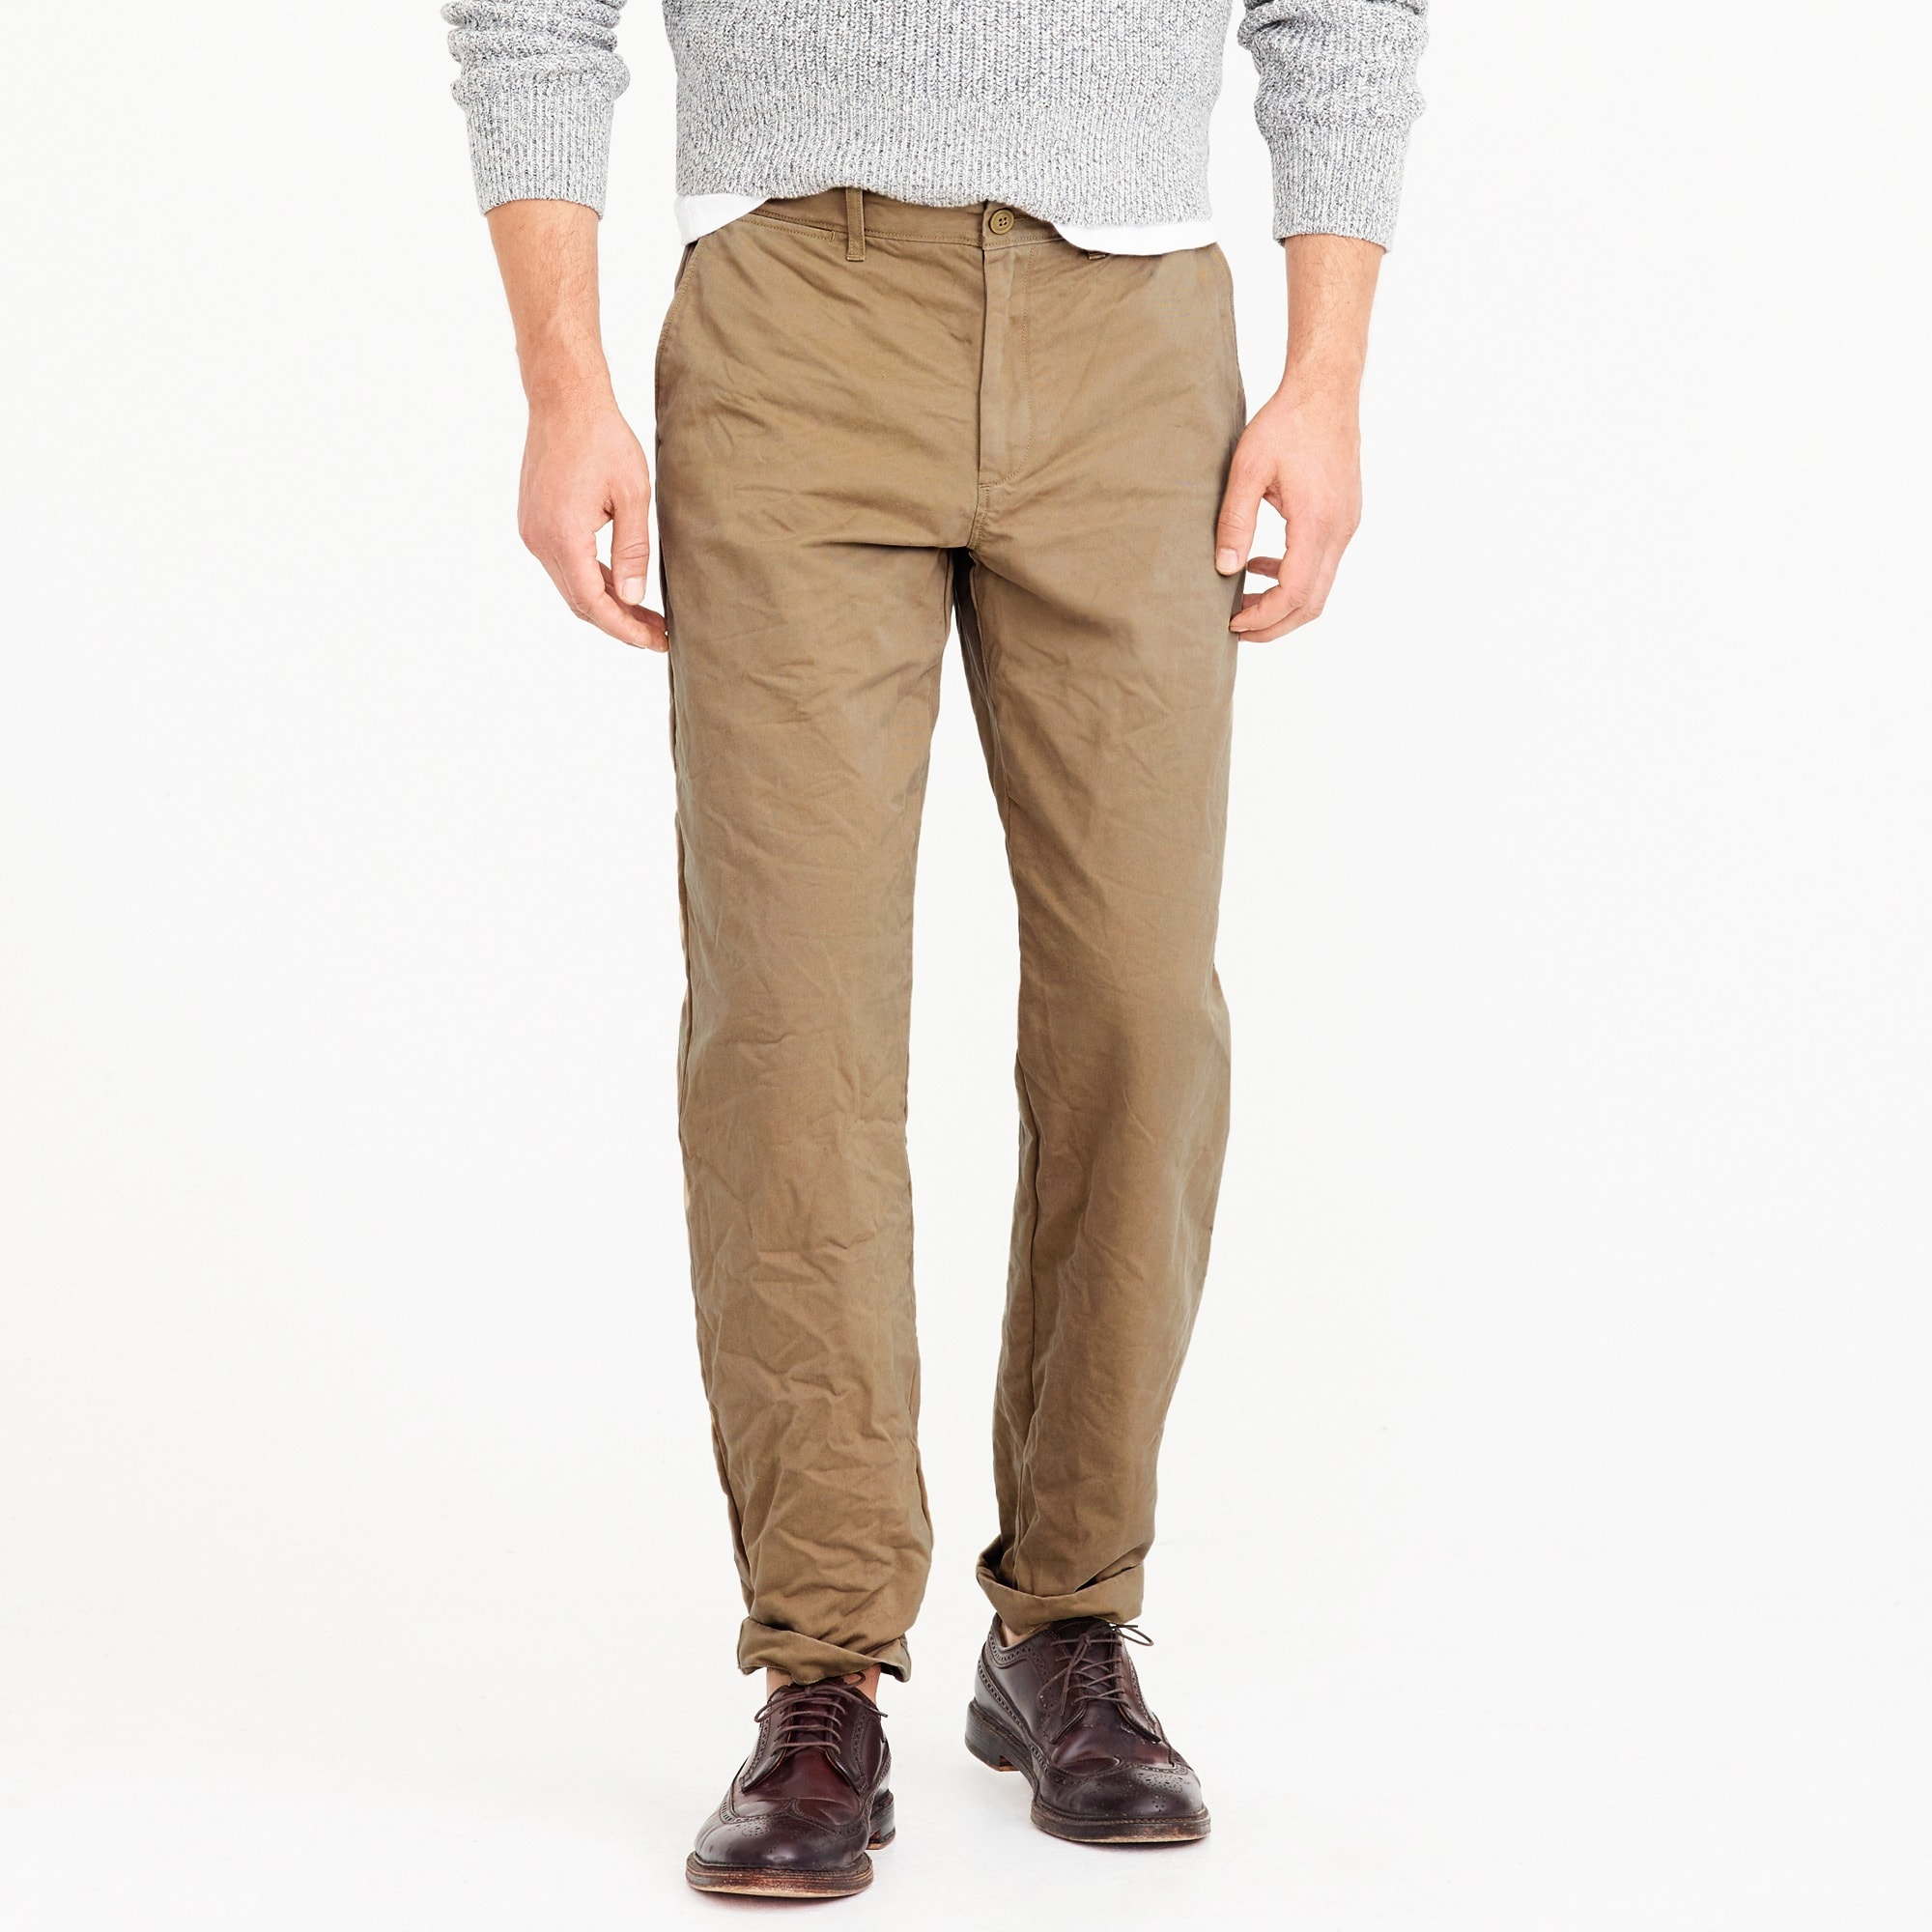 Broken-in chino pant in 1450 relaxed fit men pants c